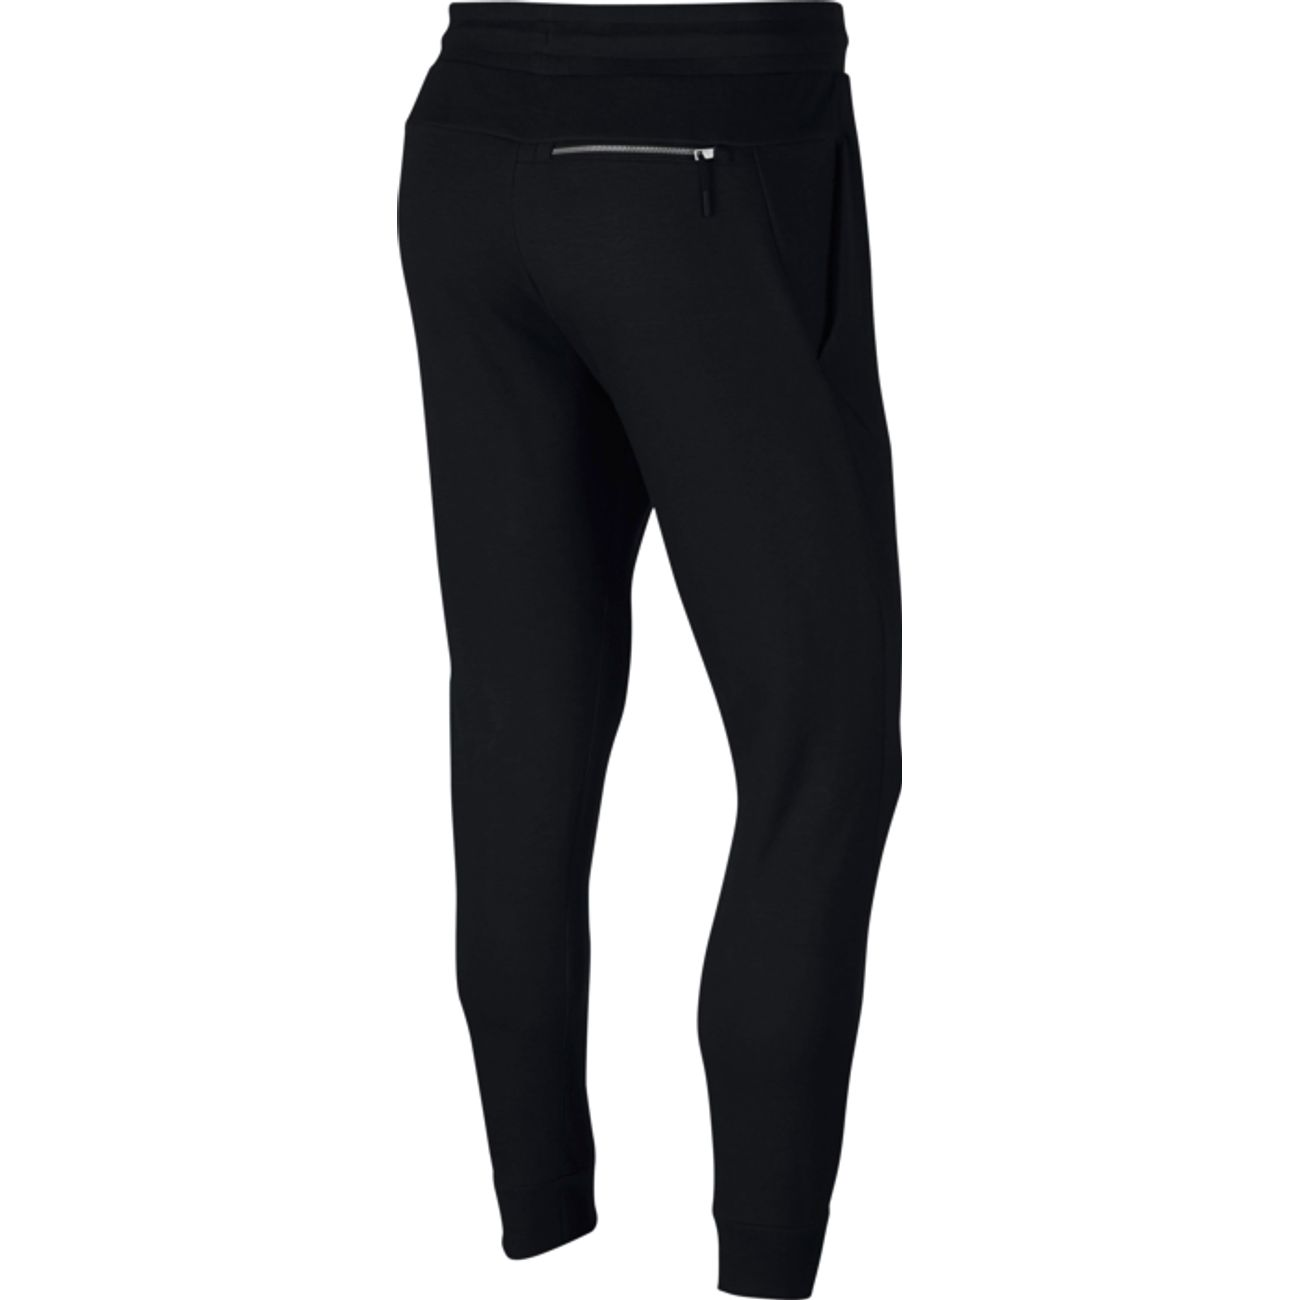 Jogging Multisport homme NIKE PANTALON DE JOGGING NSW OPTIC JGGR NOIR